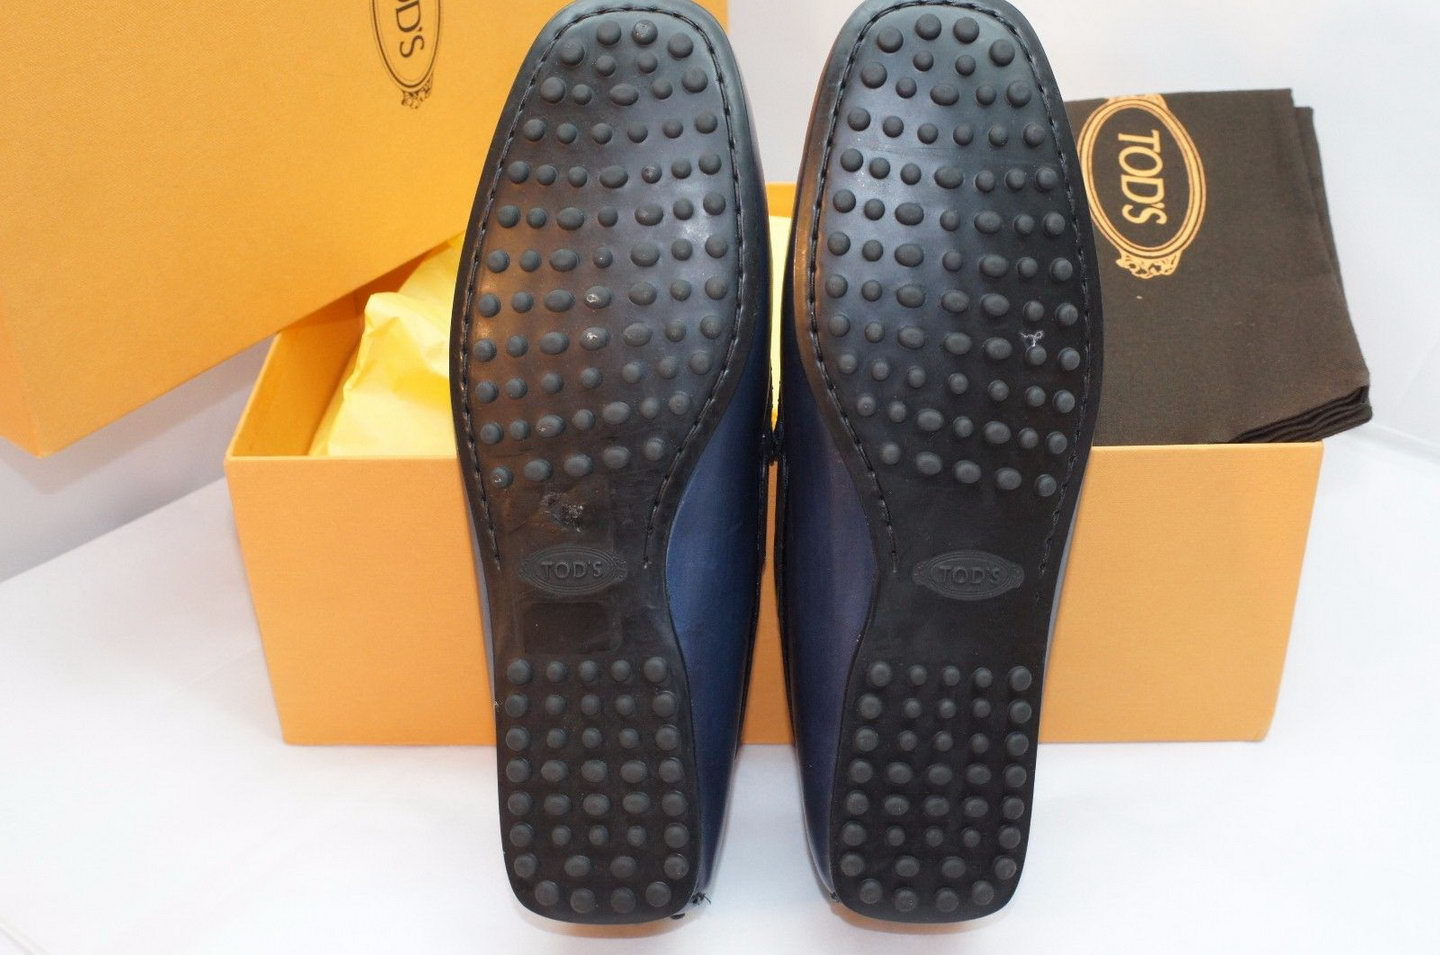 Tods Loafers | Tods Shoes Sale | Tods Gommino Driving Shoes in Suede